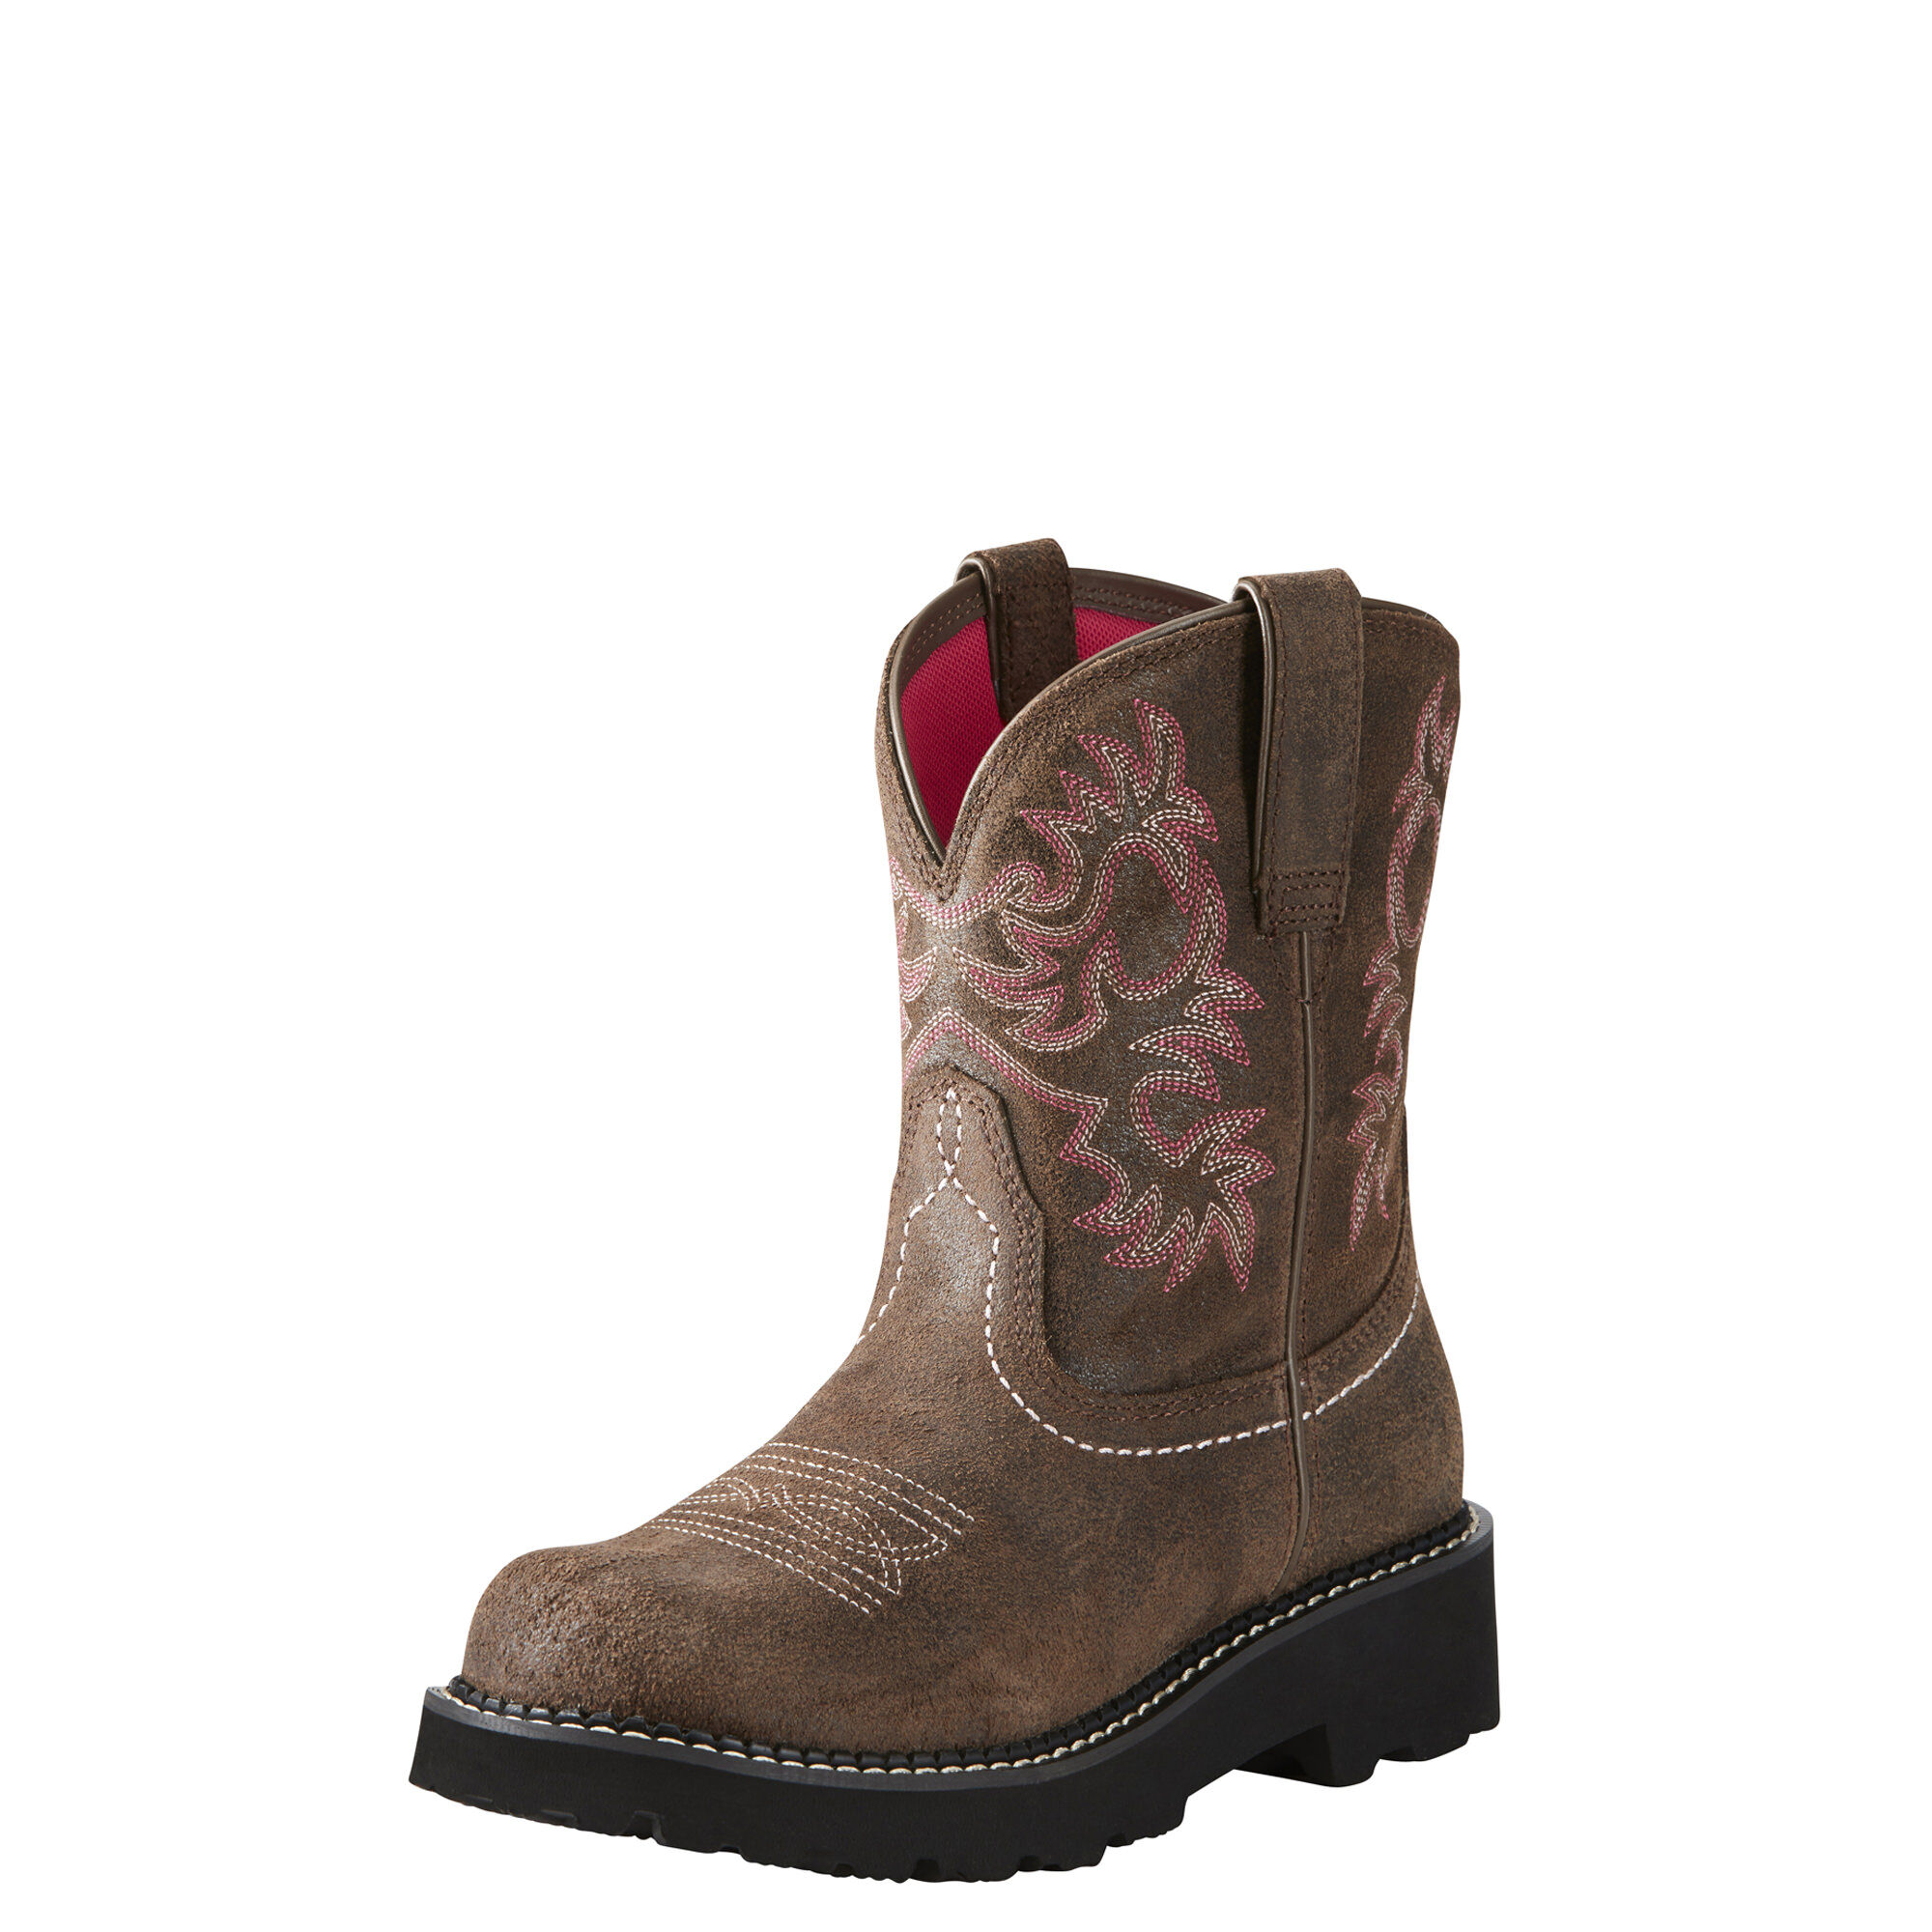 Women's Fatbaby Western Boots in Dark Barley Leather by Ariat